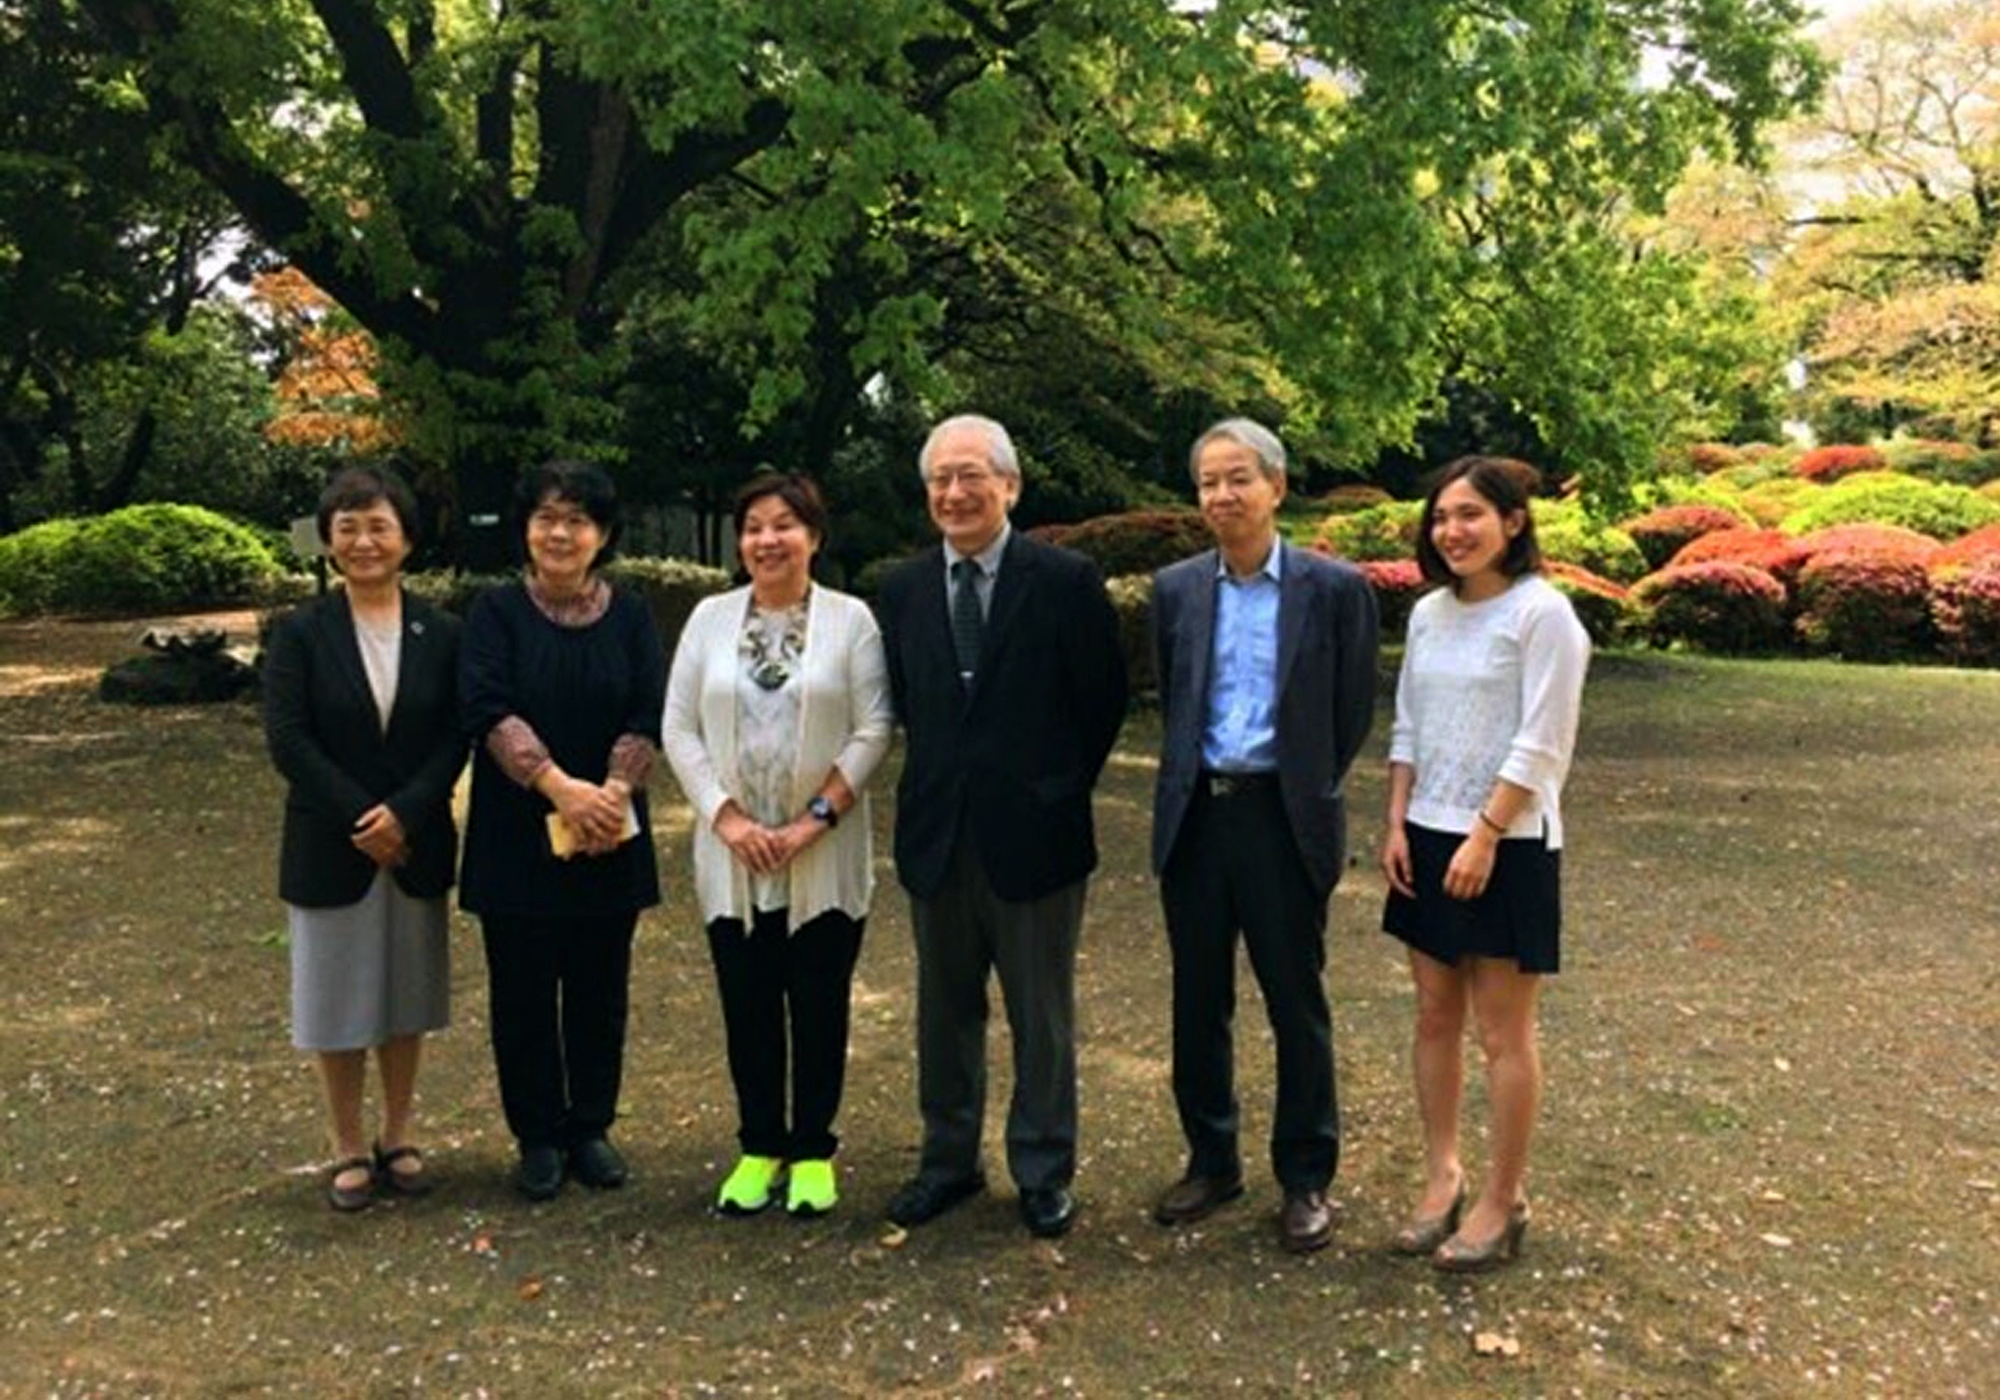 Dr. Lapus meets with heads of Japan colleges, universities to strengthen partnerships